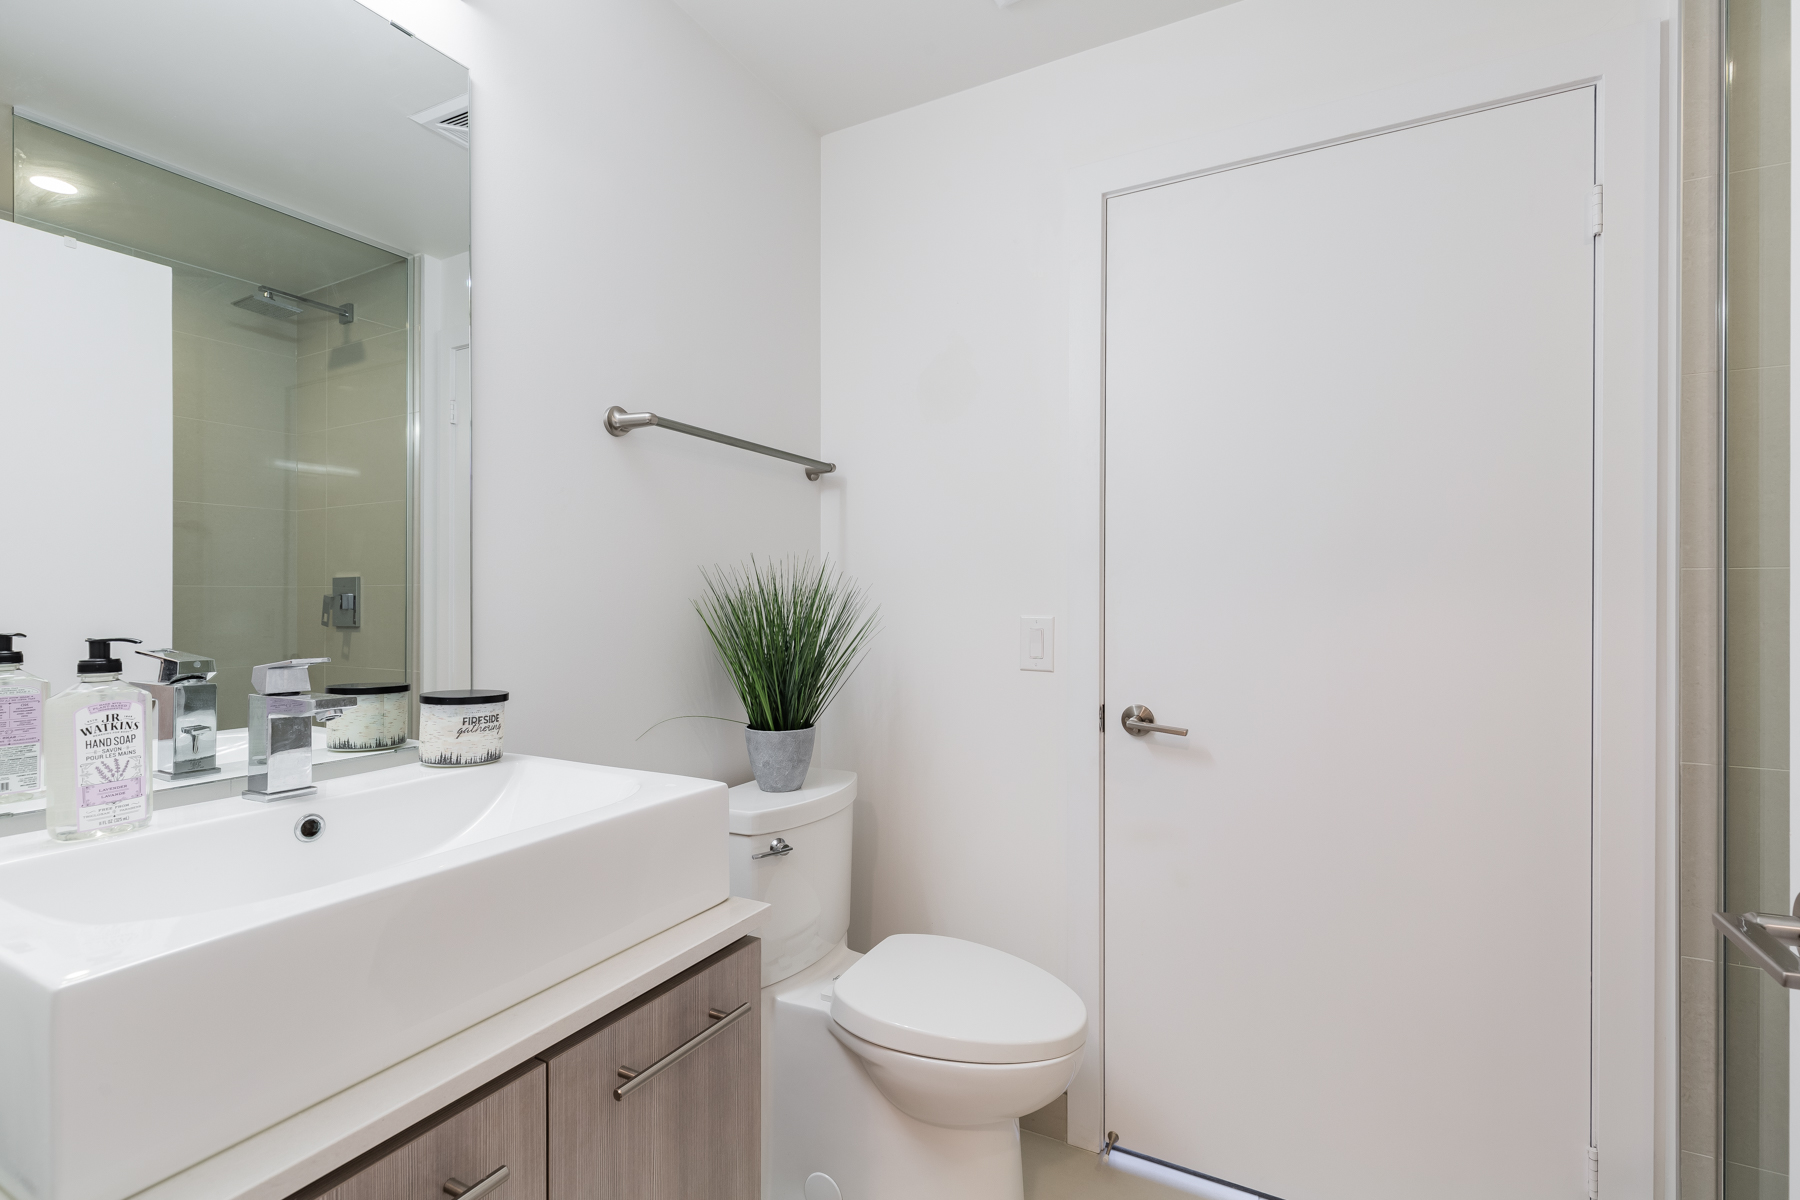 170 Chiltern Hill Rd Unit 410 bathroom with view of sink, toilet and door.